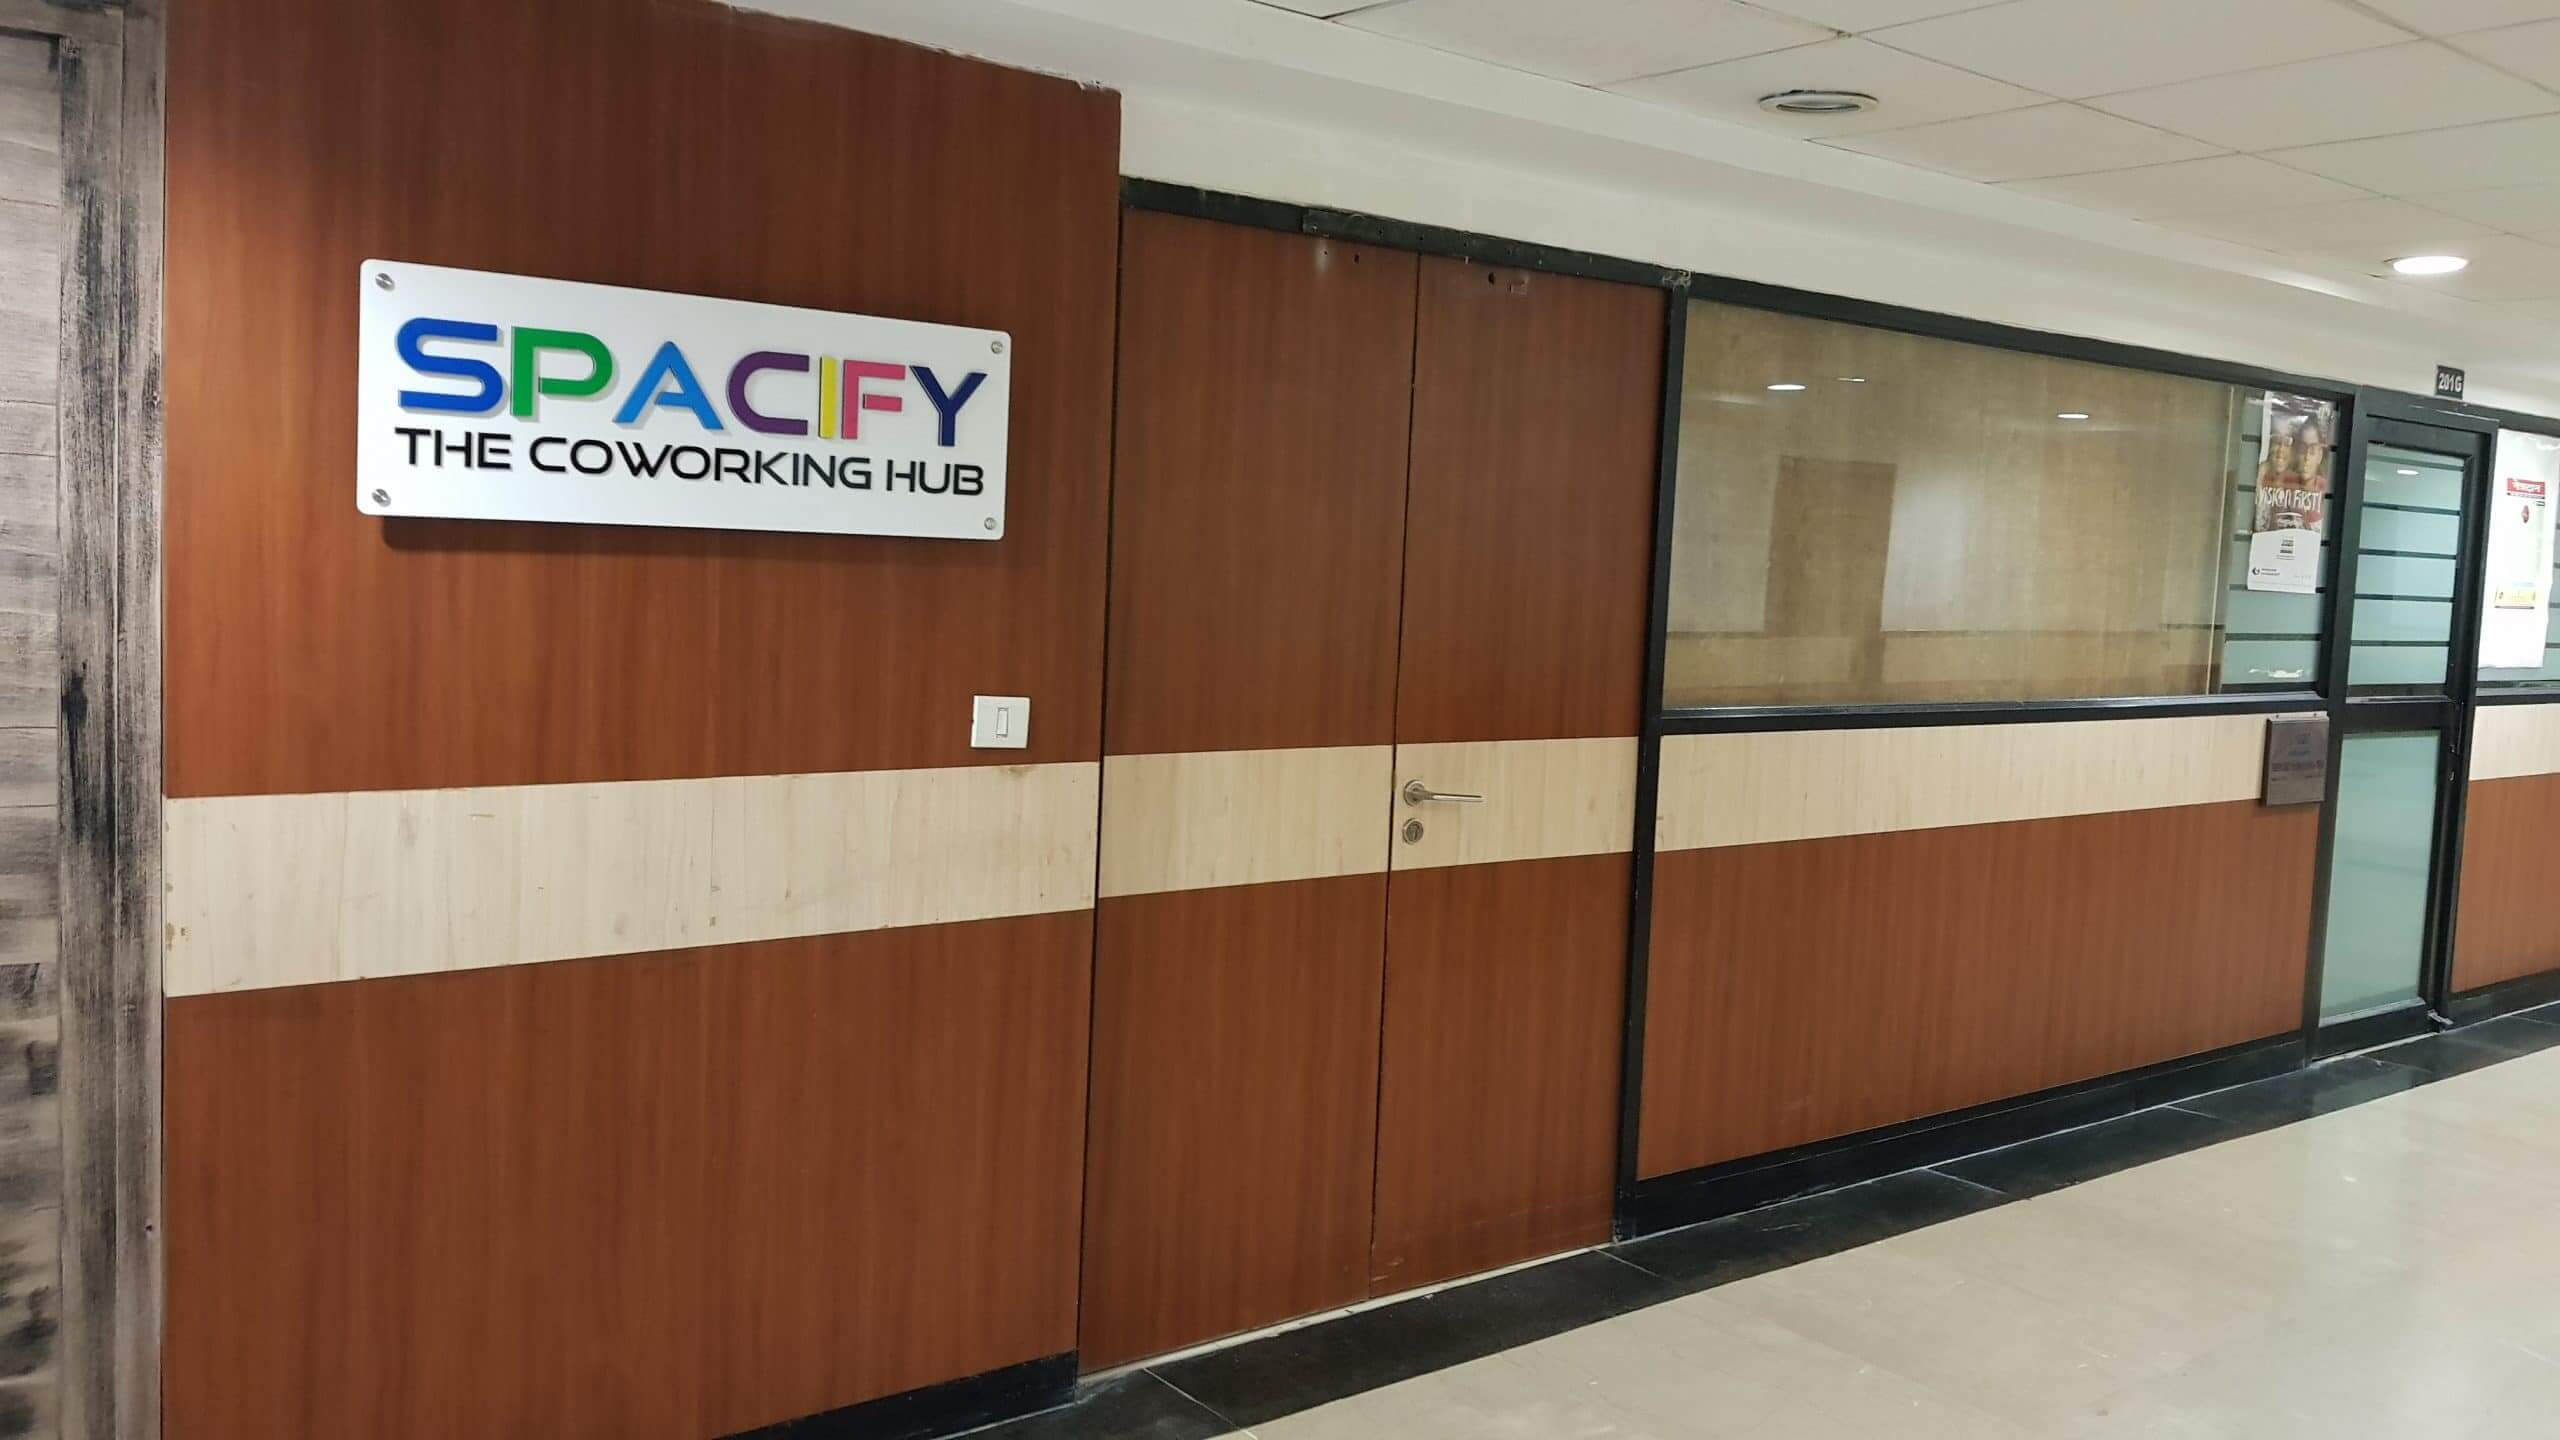 Spacify coworking Hub Sector 21| Bookofficenow